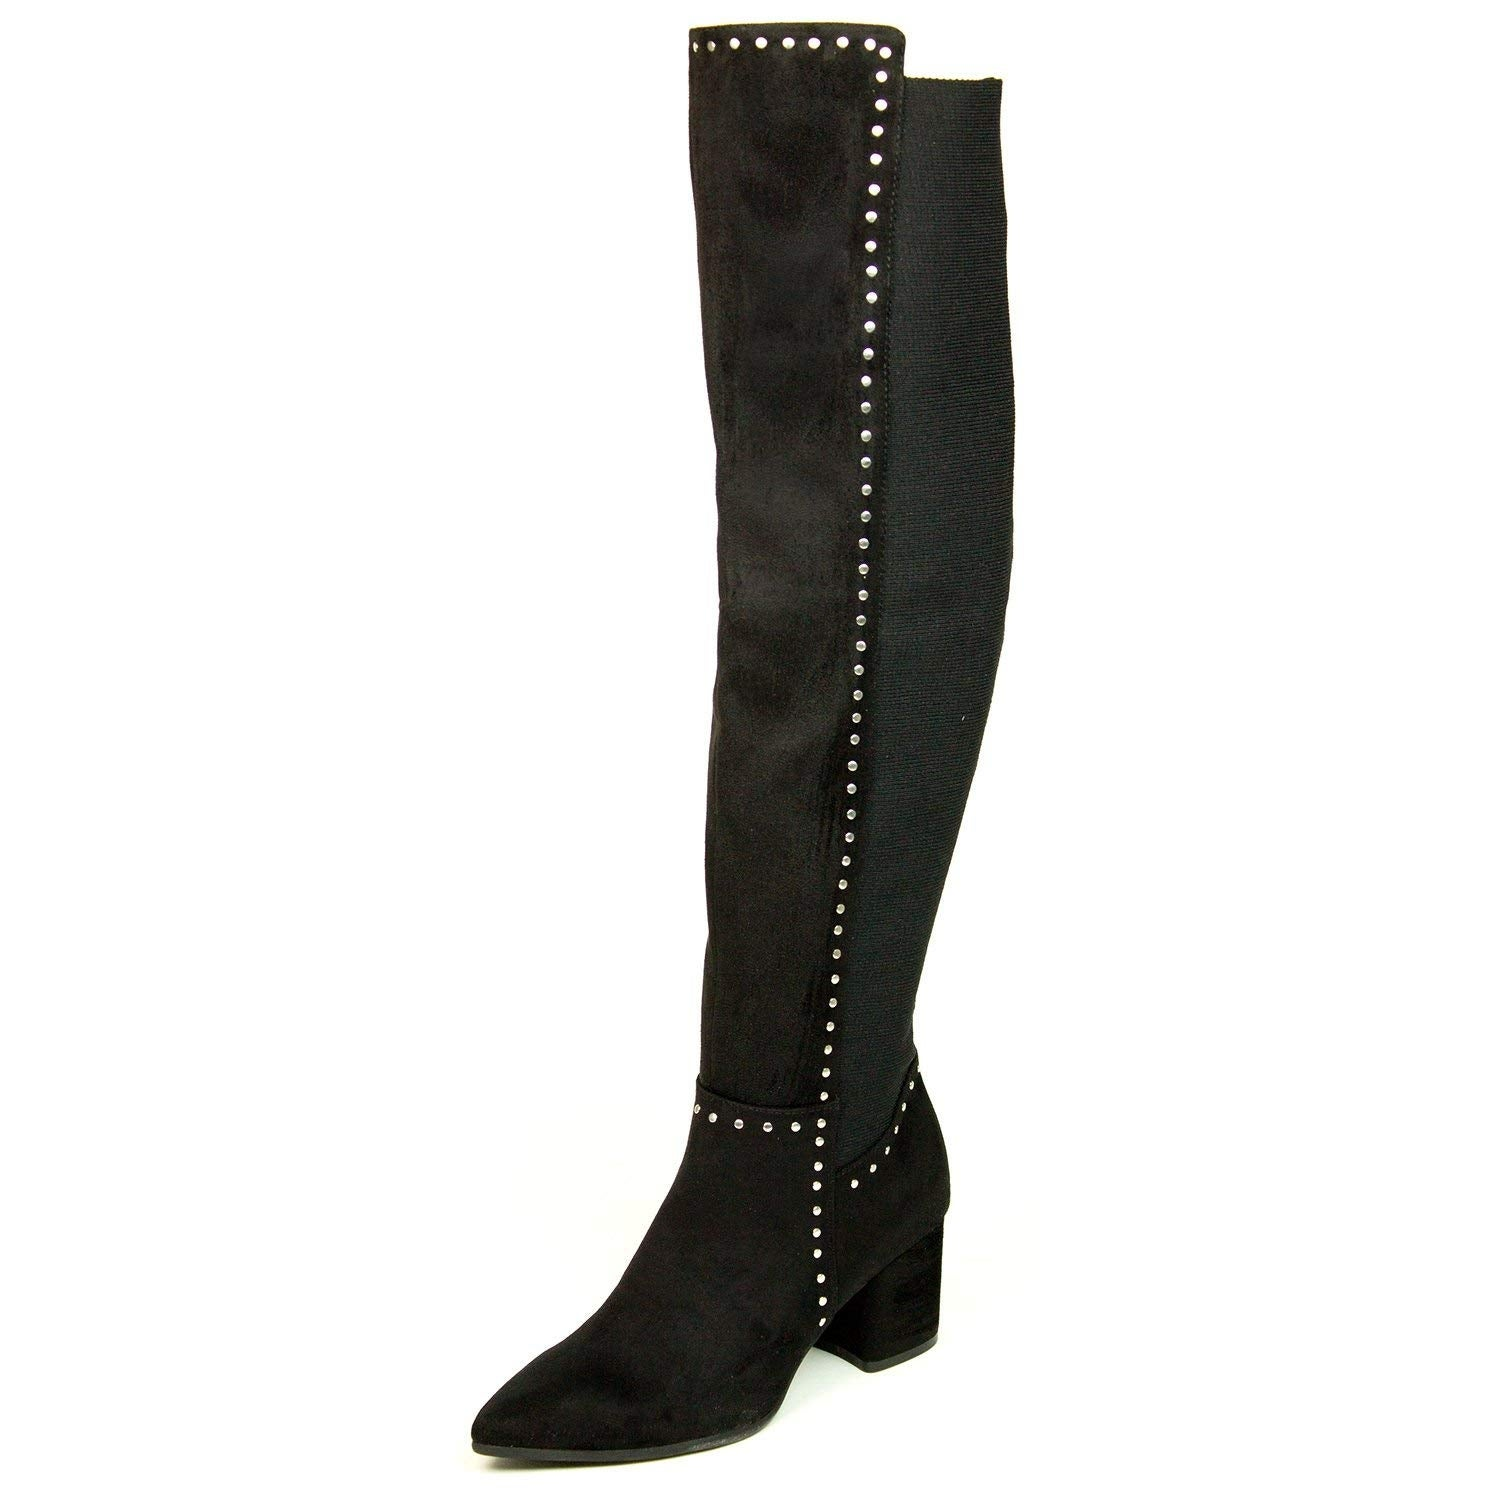 Up To 36% Off on Olivia Miller Women's Boots | Groupon Goods